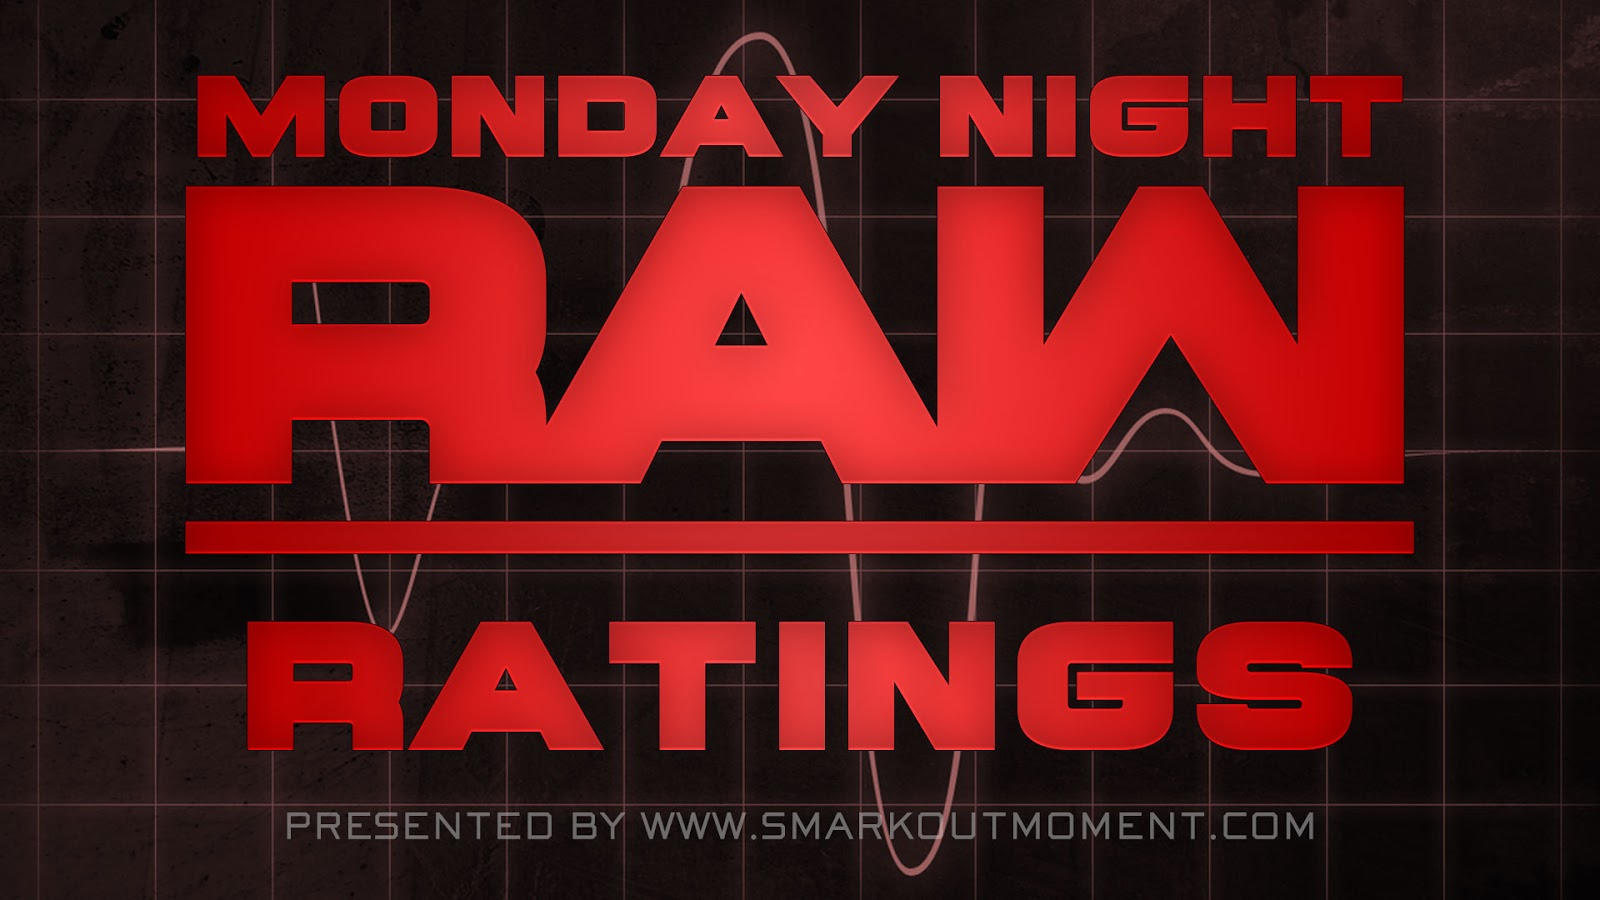 Wwe monday night raw 12 12 2016 nielsen ratings report - Monday night raw images ...